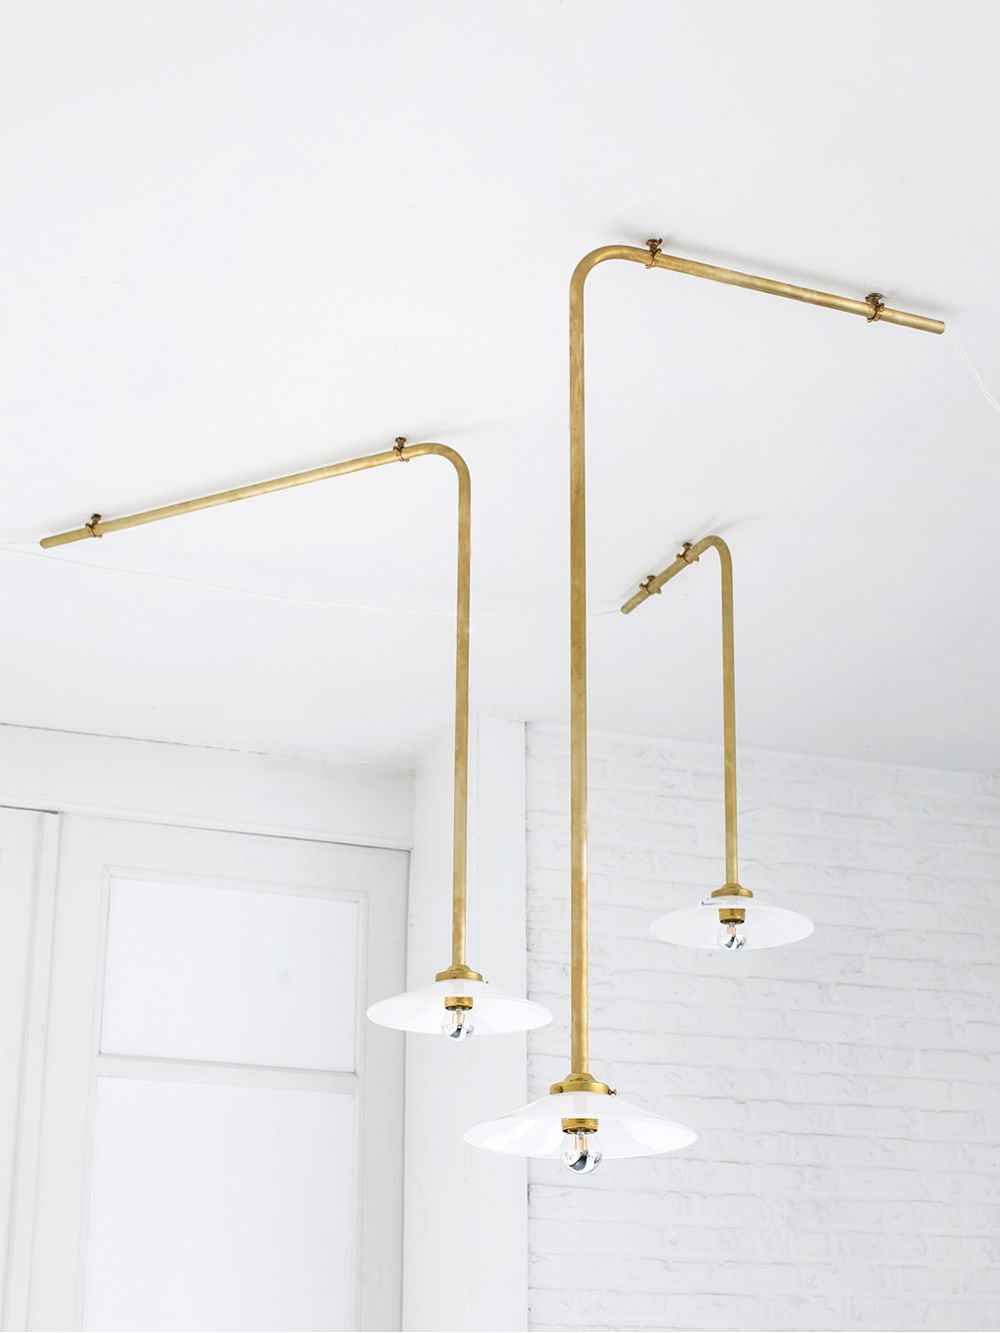 Valerie Objects Ceiling Lamps in brass